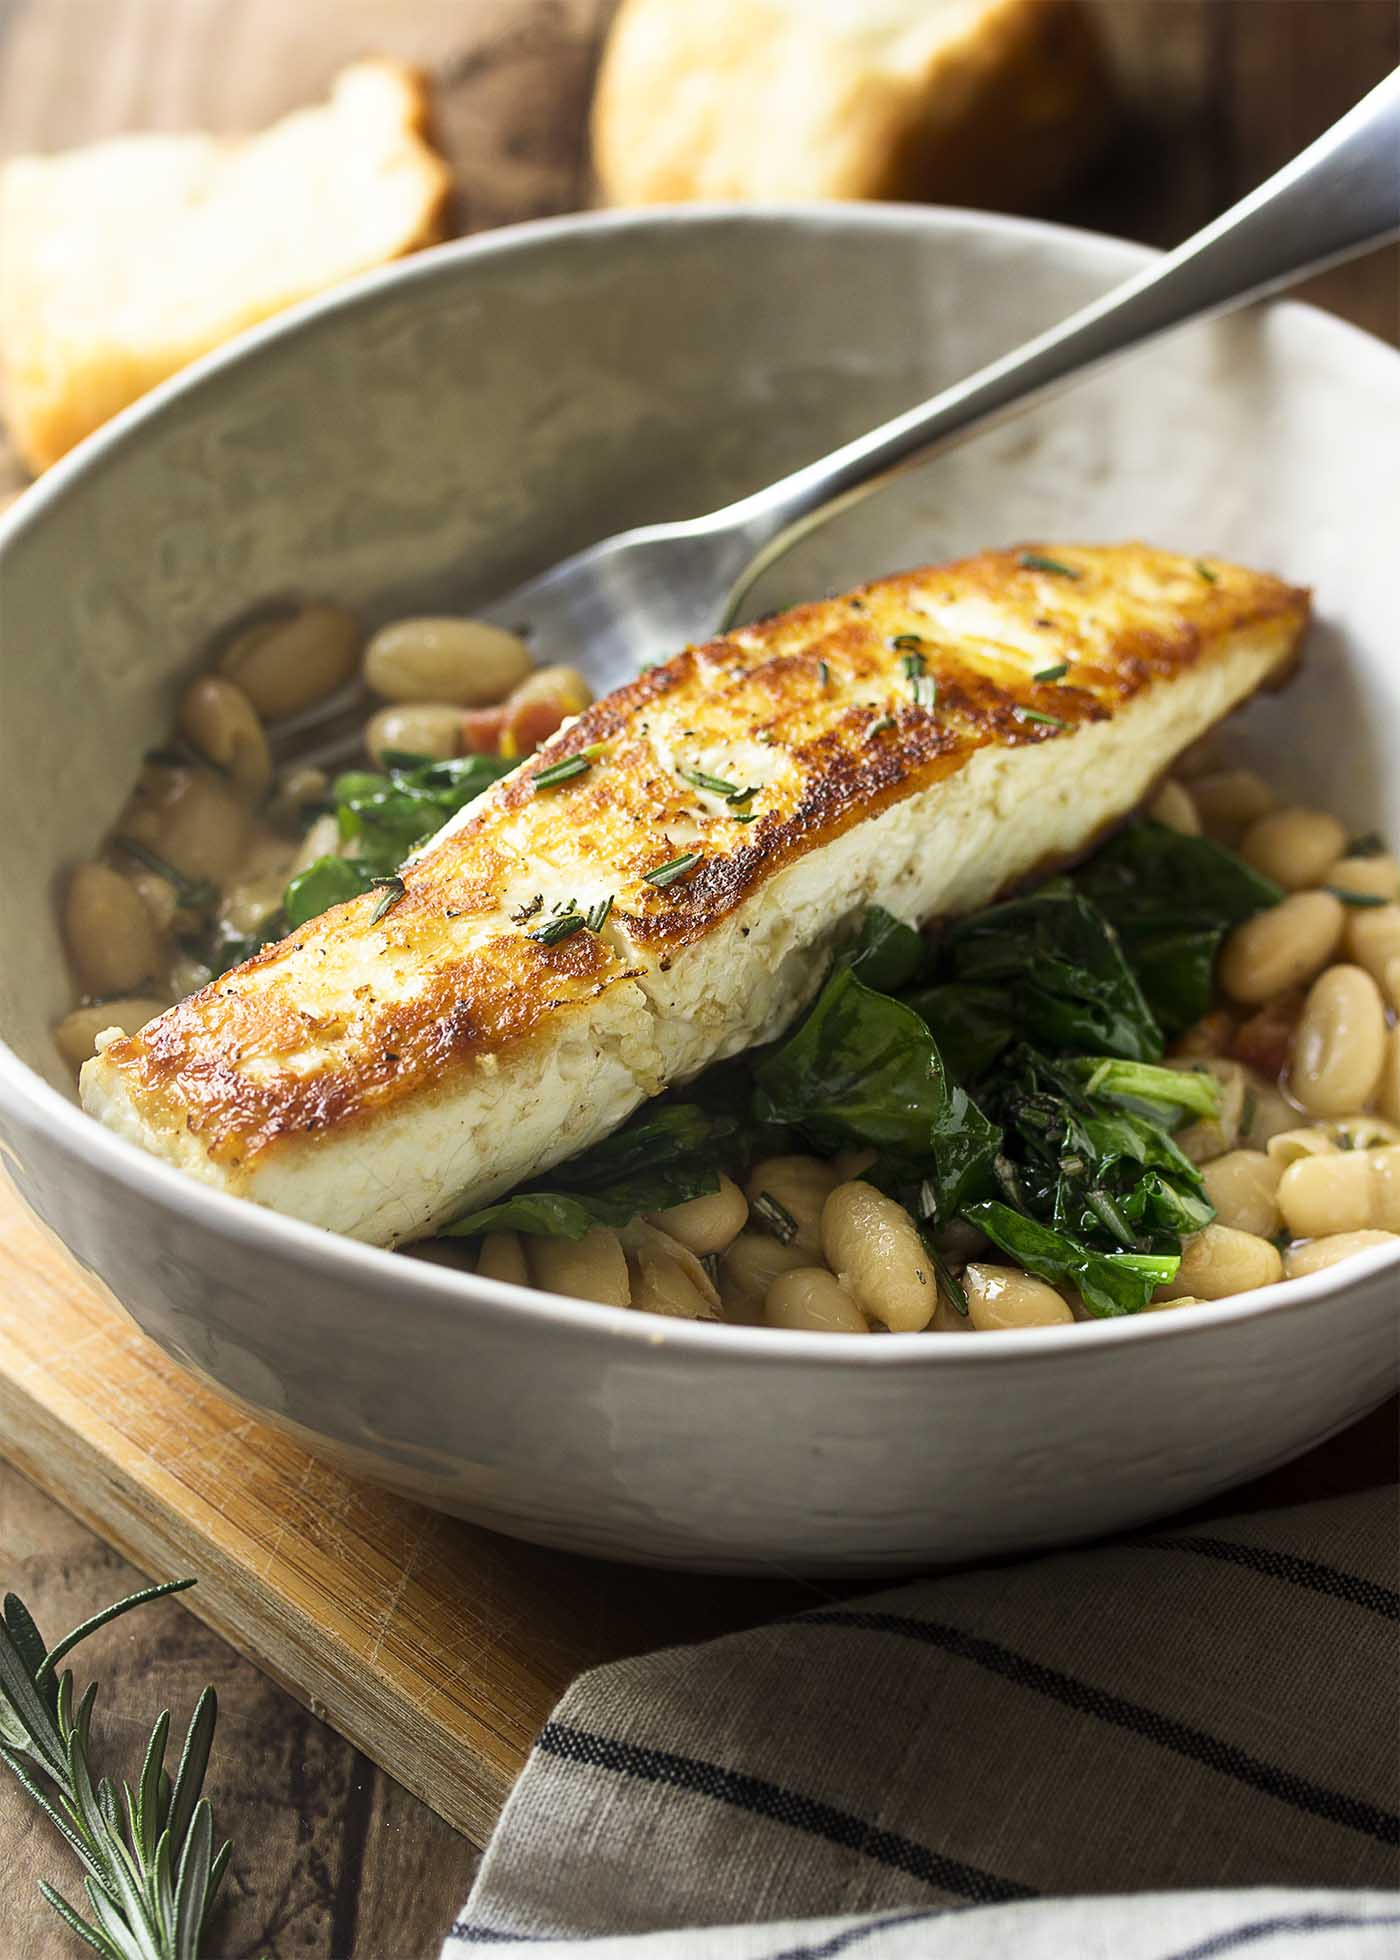 Large dinner bowl of white beans topped by sauteed spinach and a piece of golden brown fish.